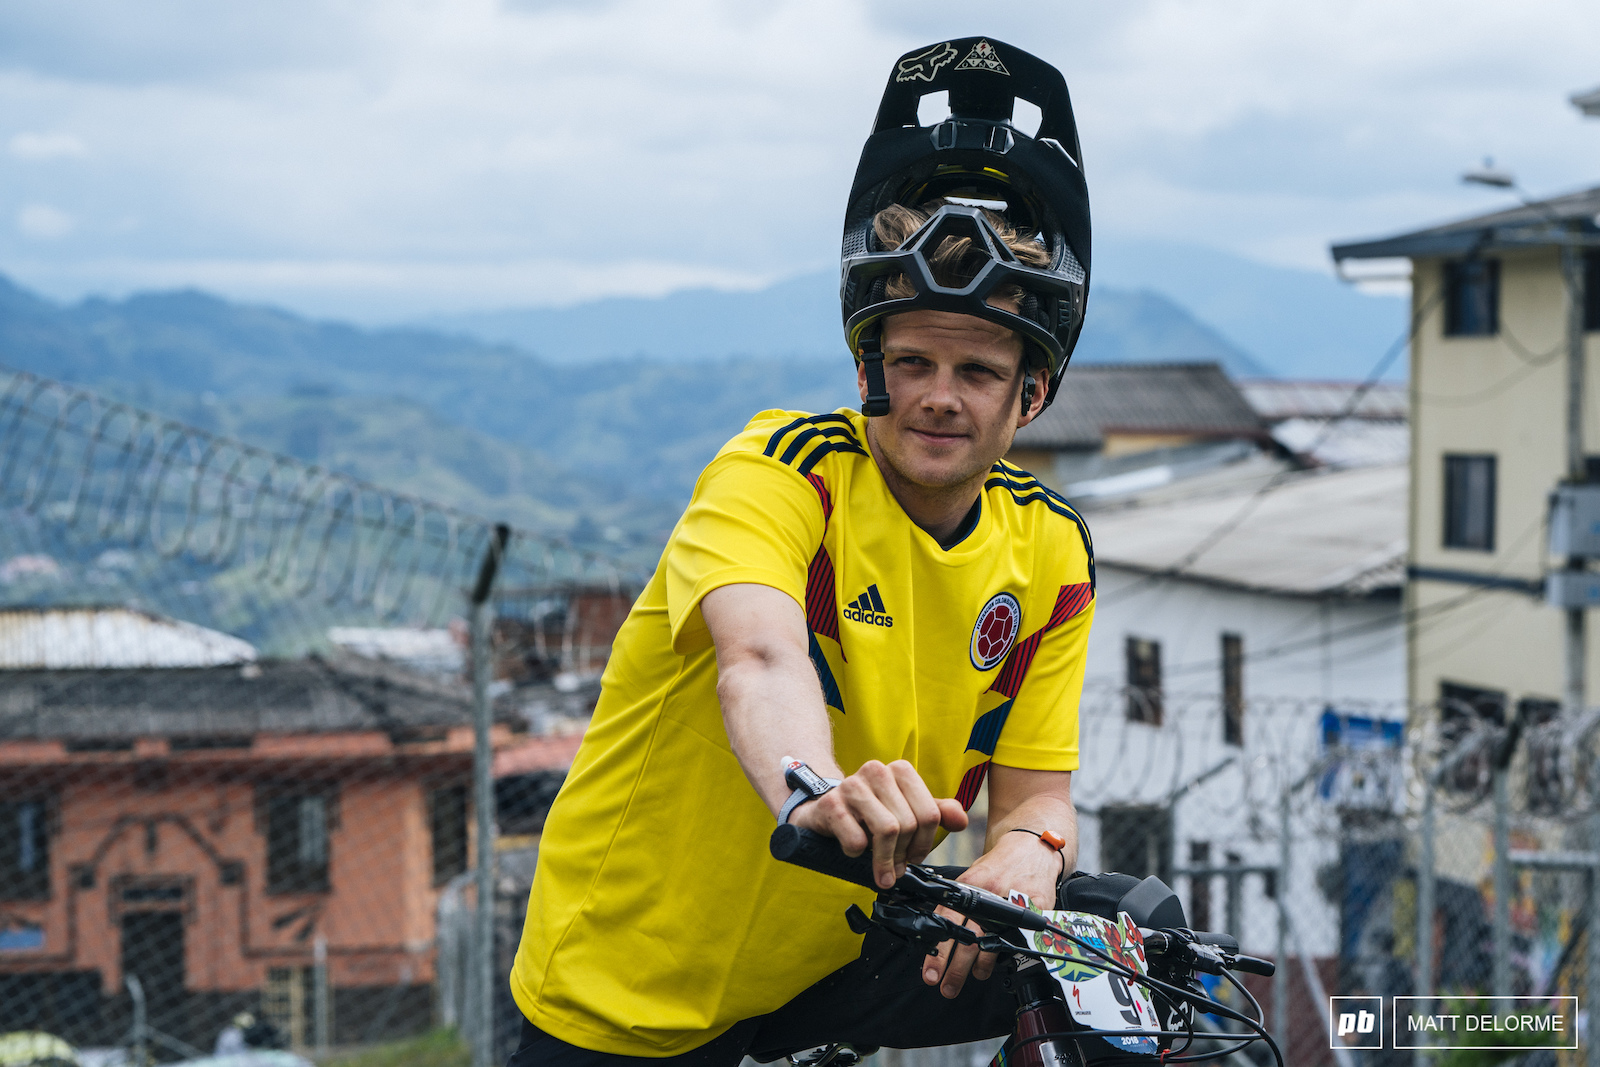 Mark Scott took 8th for the weekend. He got massive cheers on the urban stage in his Colombia soccer jersey.